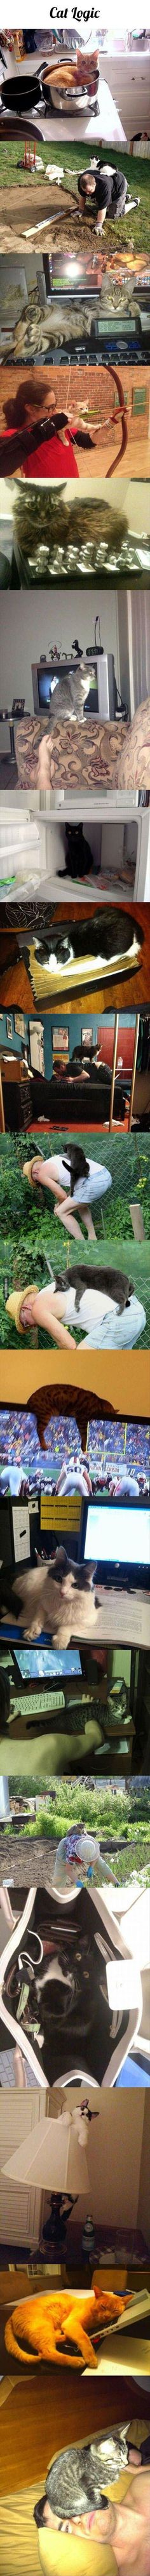 Cat Logic cute animals cat cats adorable animal kittens pets kitten funny pictures funny animals funny cats